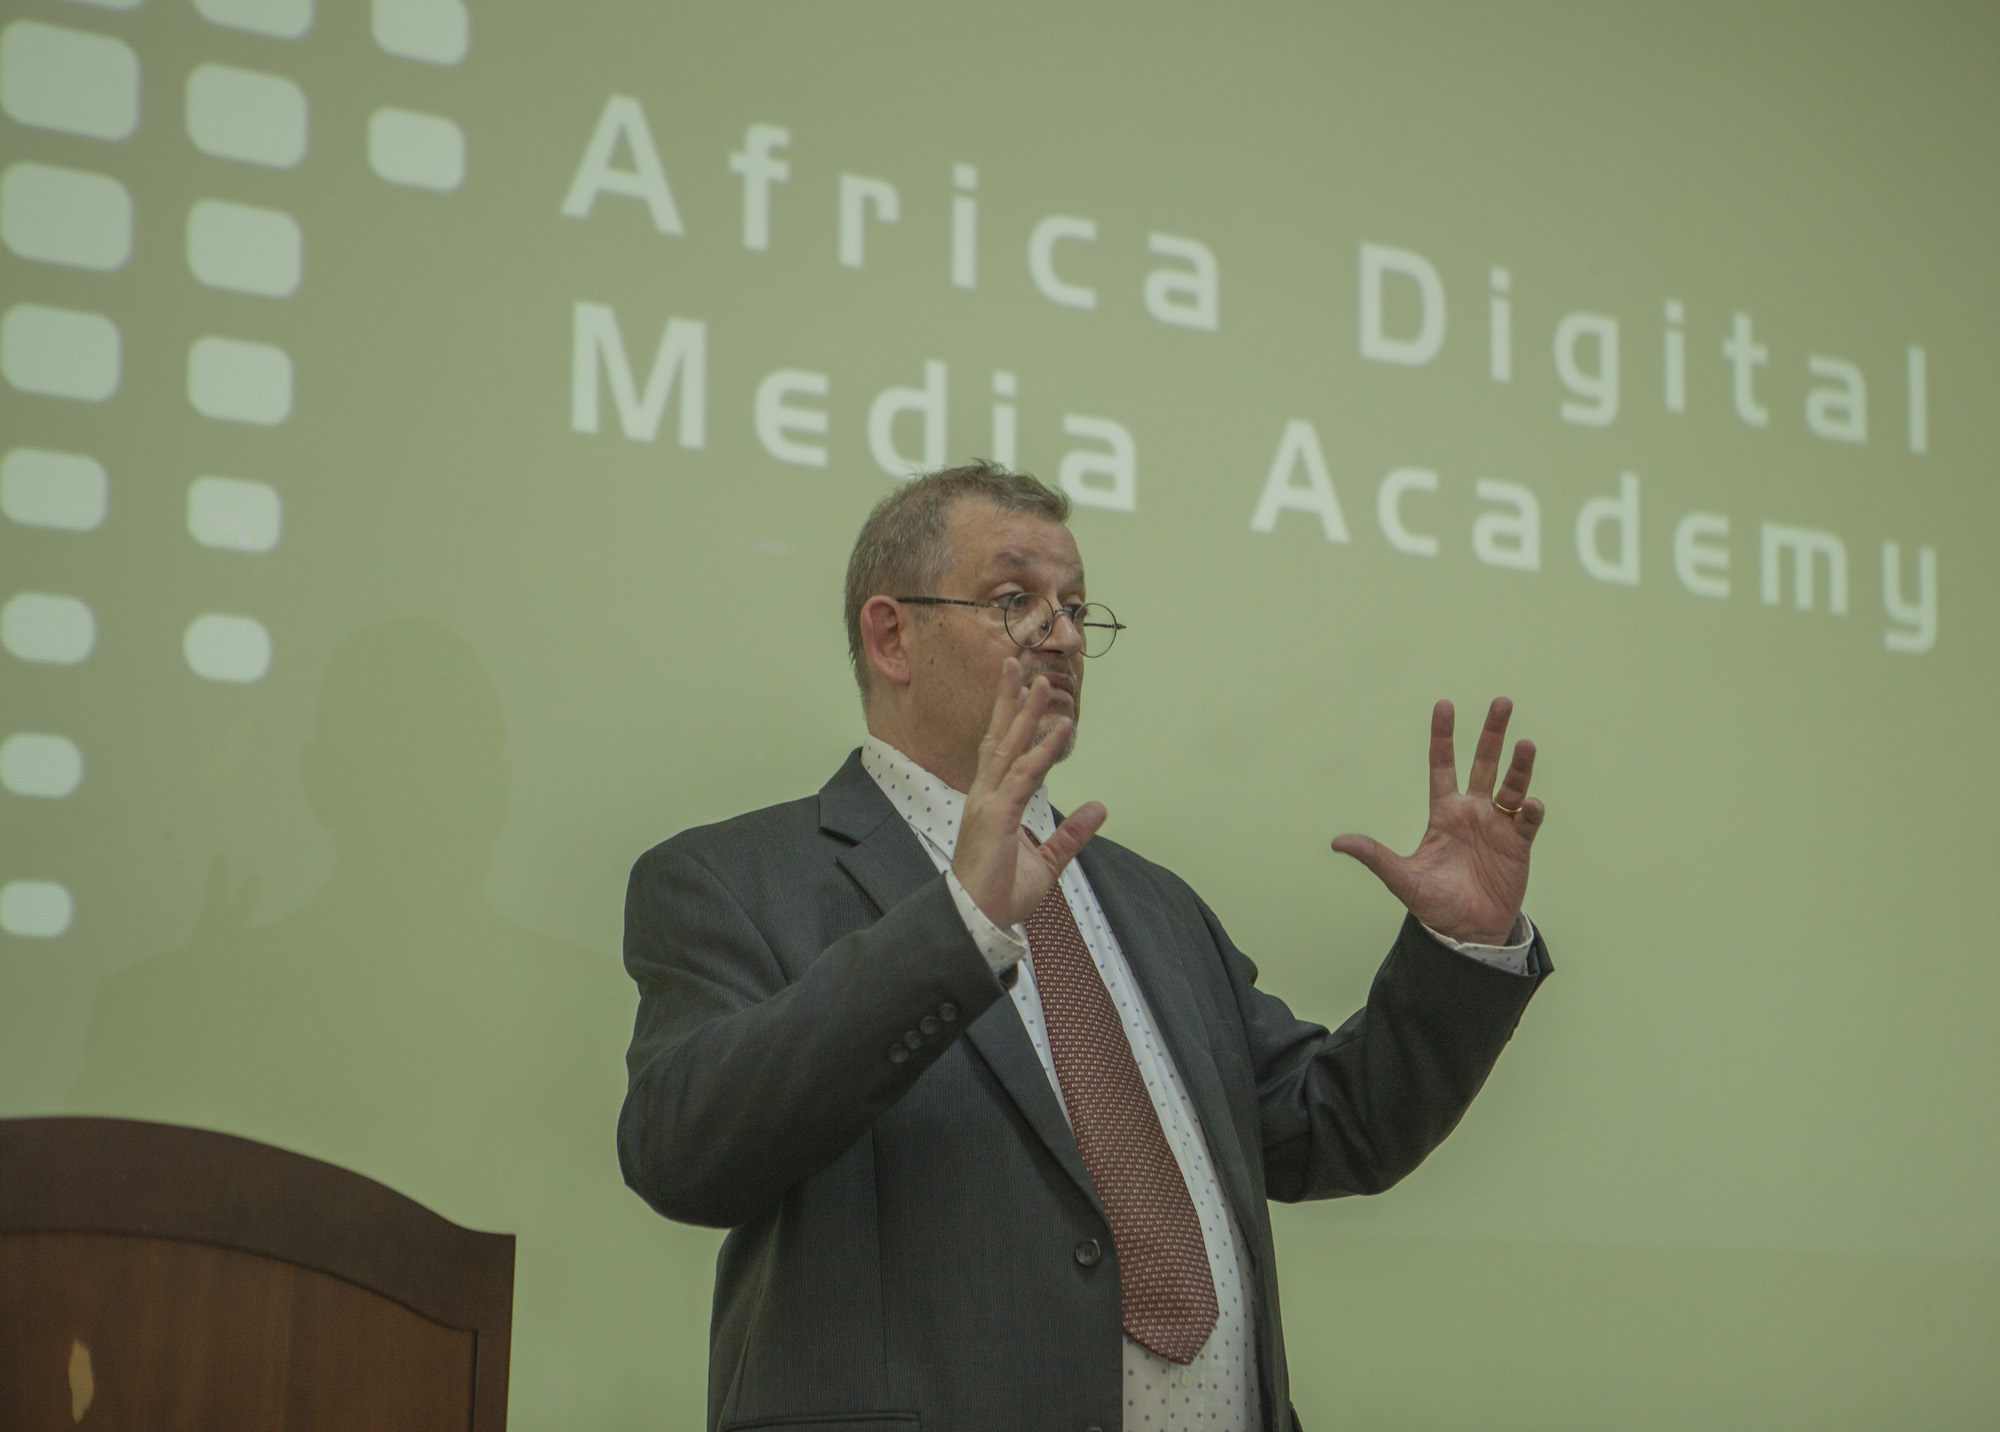 Christopher MARLER, Director of ADMA, speaking at the graduation ceremony.